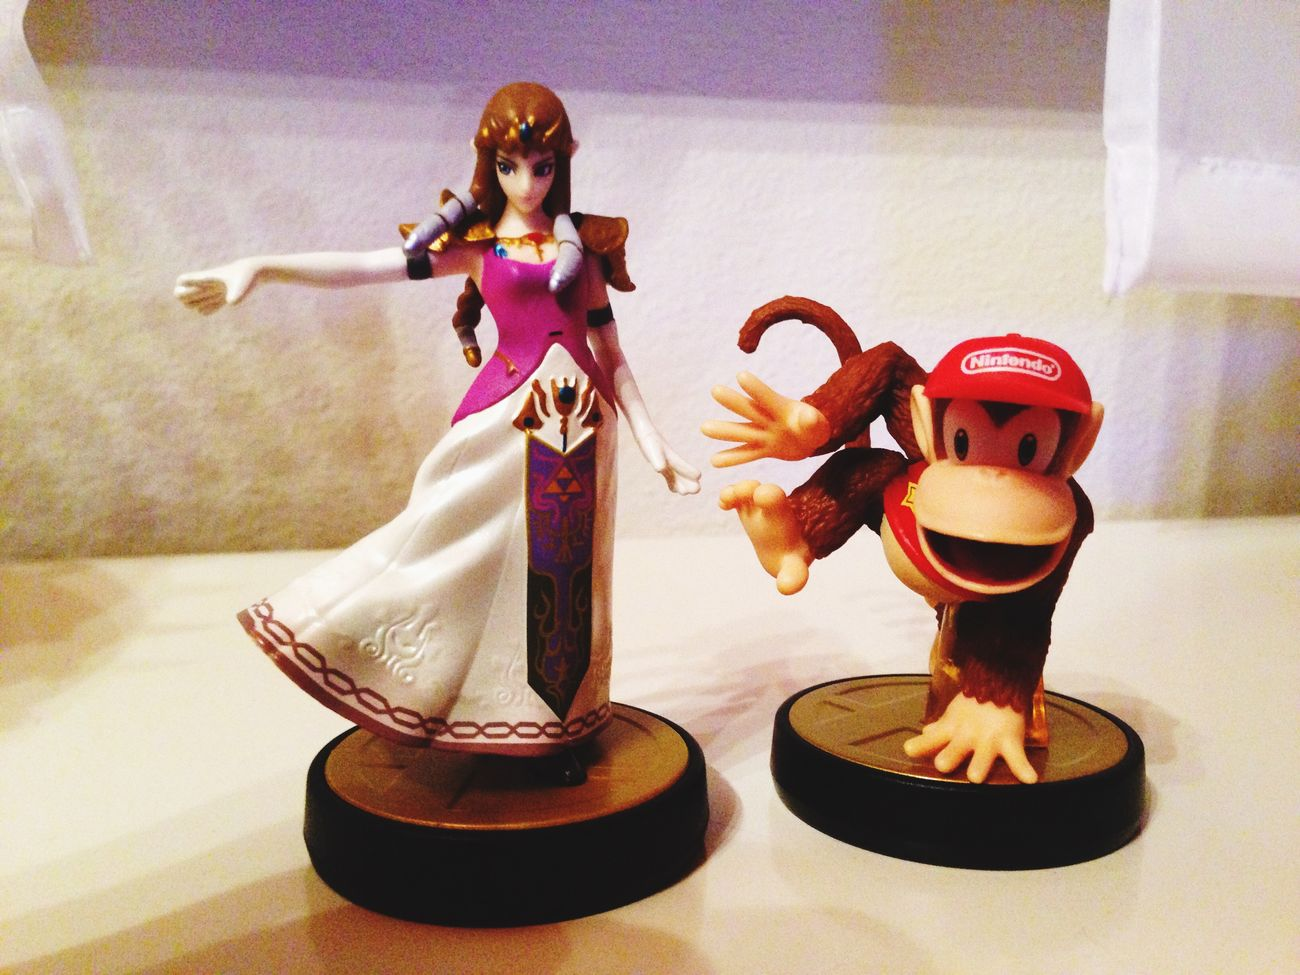 Amiibo Nintendo Zelda DiddyKong Video Games